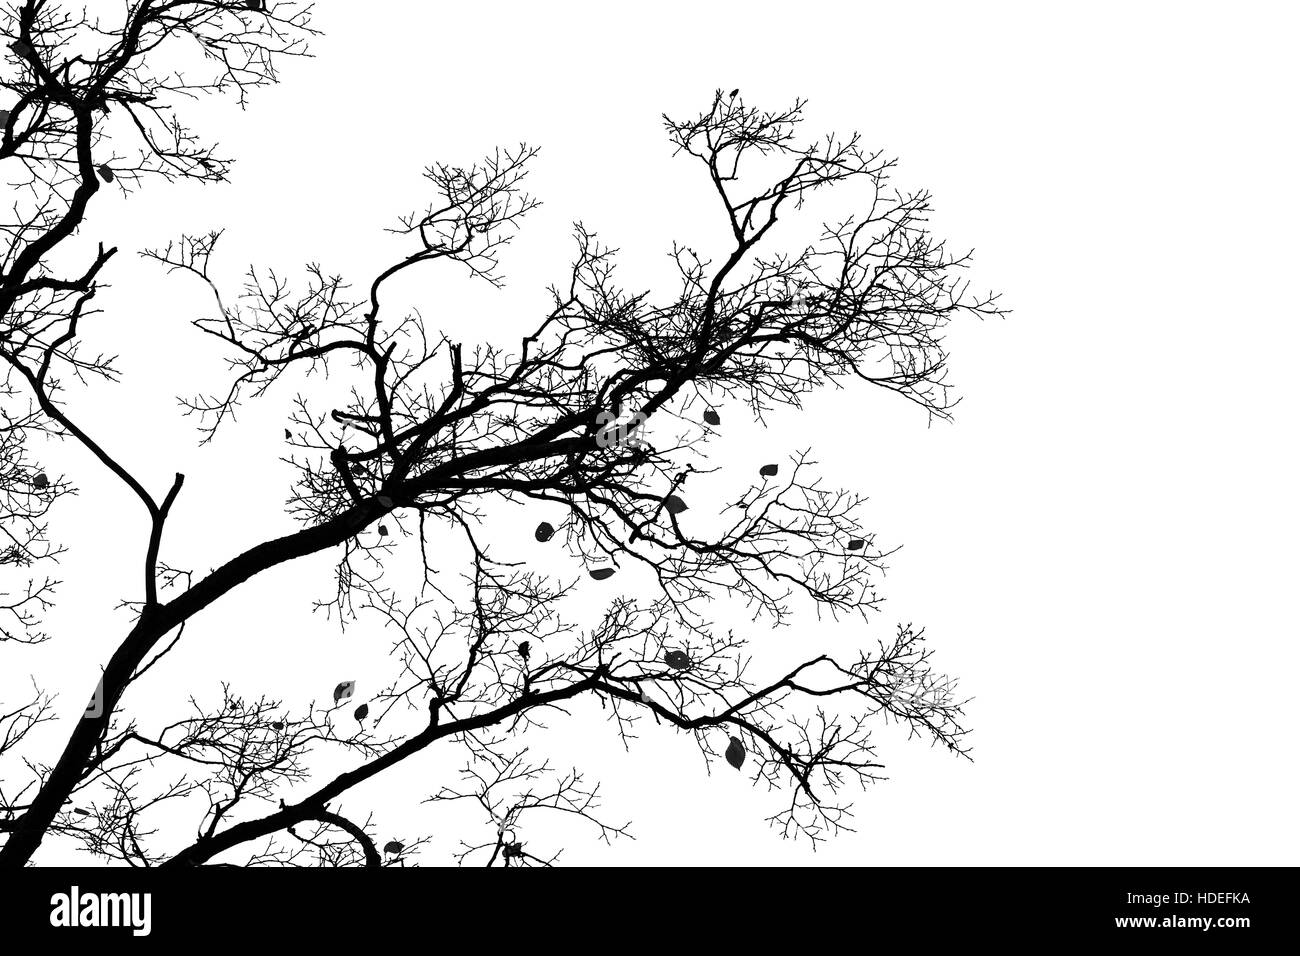 Leafless bare trees isolated on white sky background. Monochrome silhouette photo - Stock Image